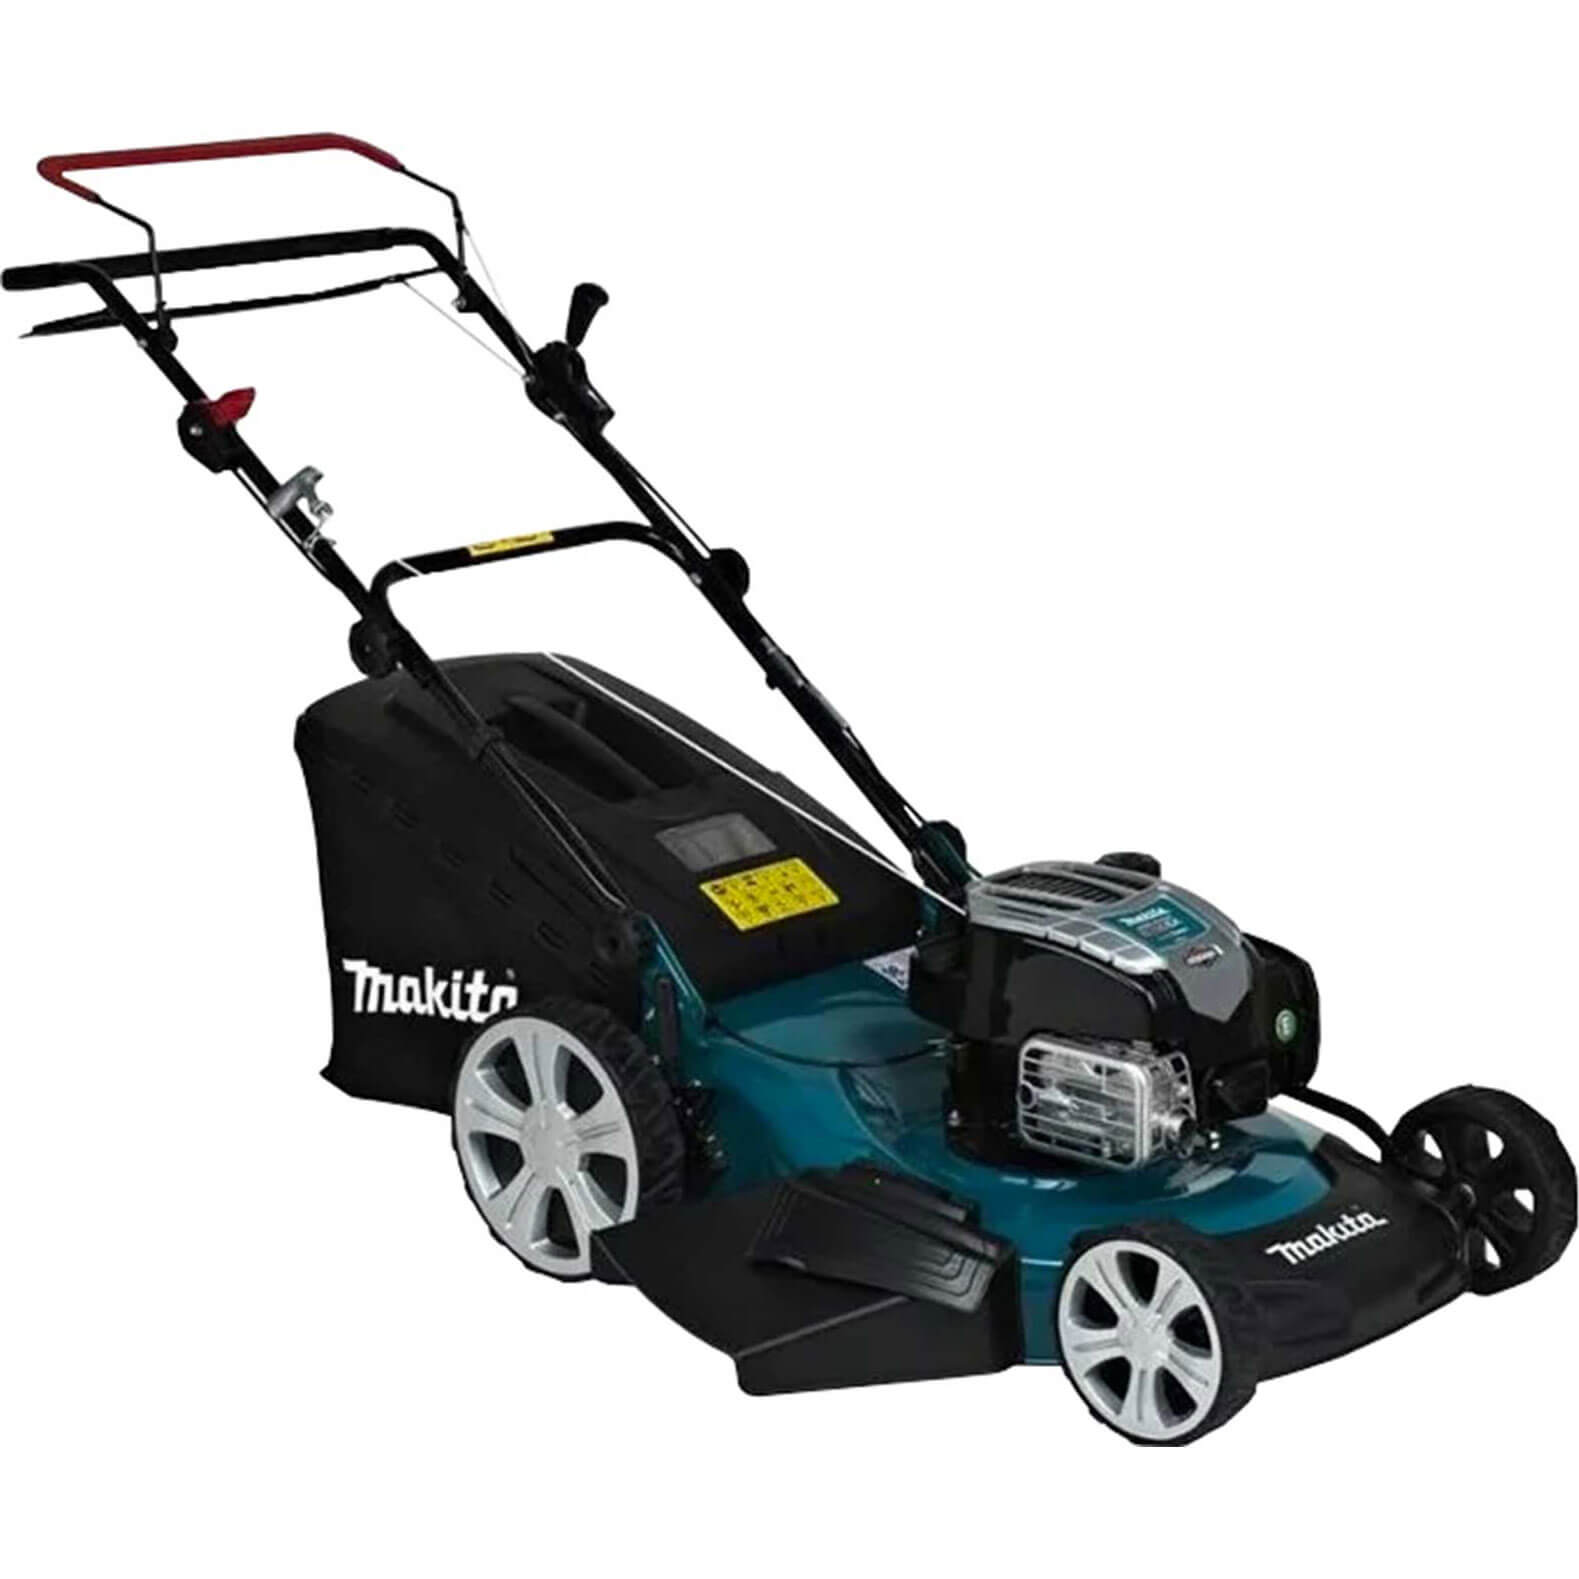 Image of Makita PLM5600N2 Petrol Rotary Lawnmower 560mm